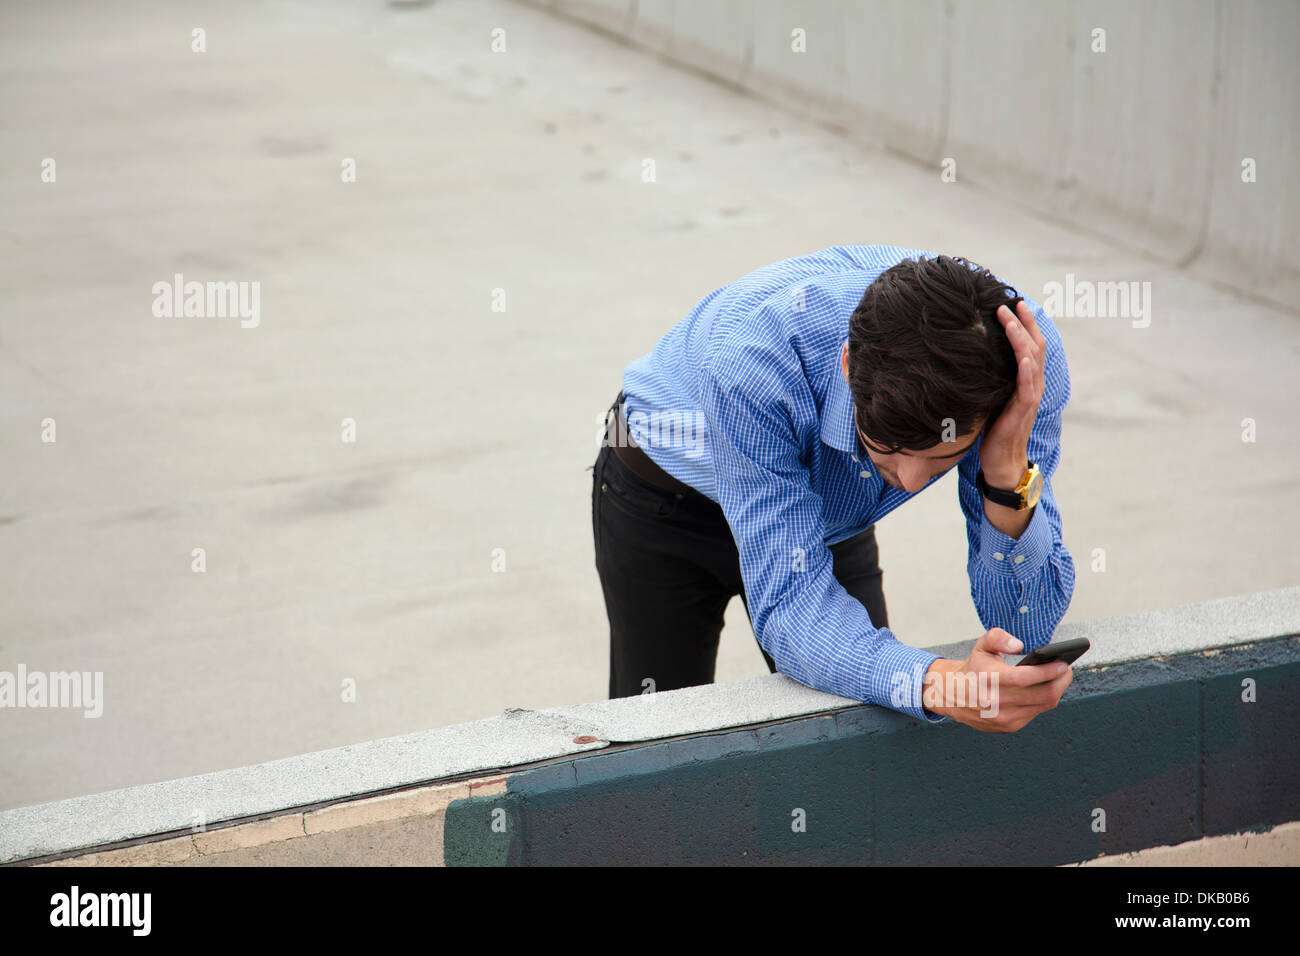 Anxious young man leaning on wall on city rooftop - Stock Image